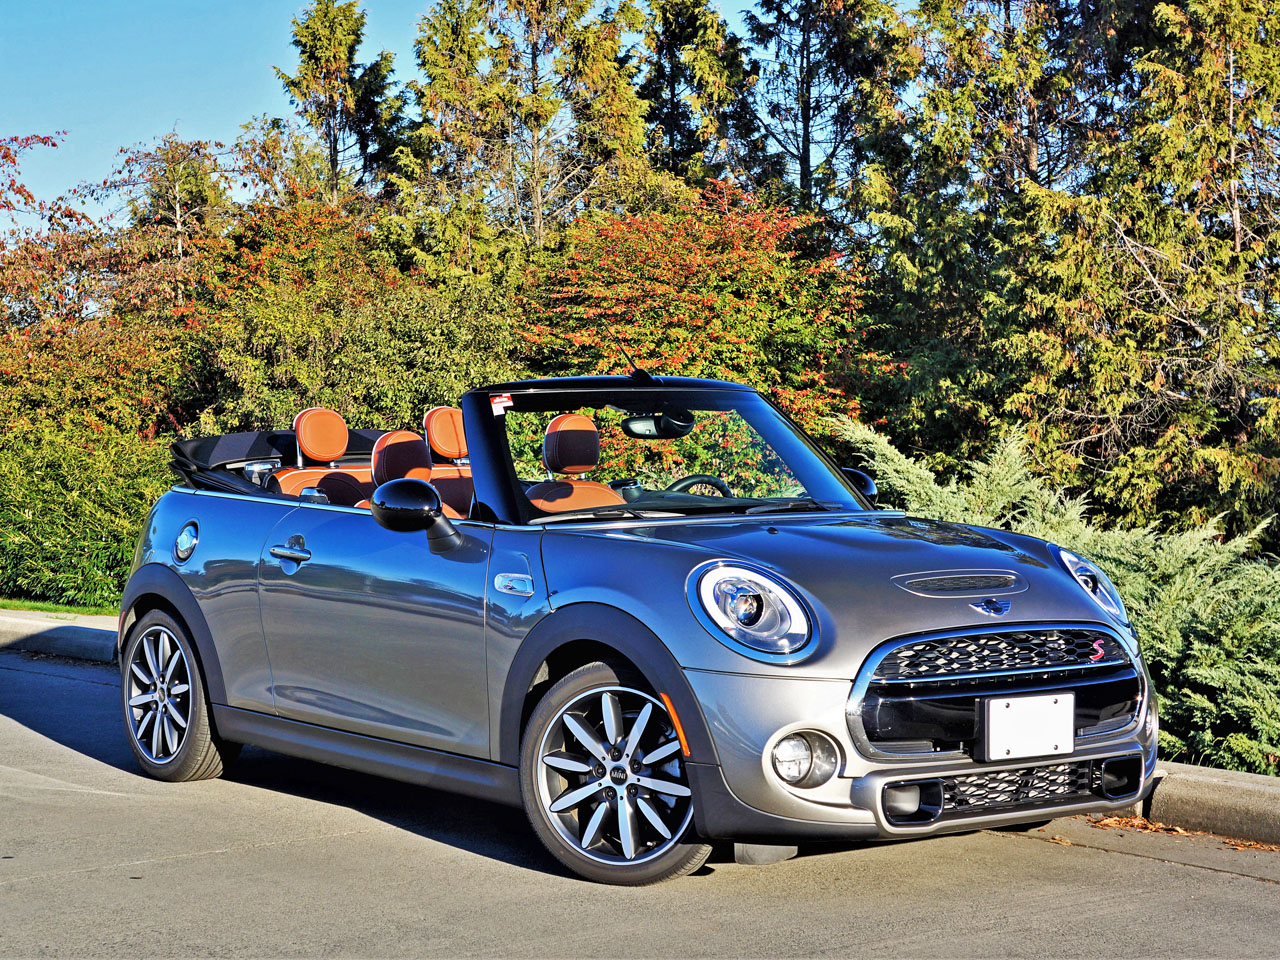 2017 Mini Cooper S Convertible Road Test Carcostcanada